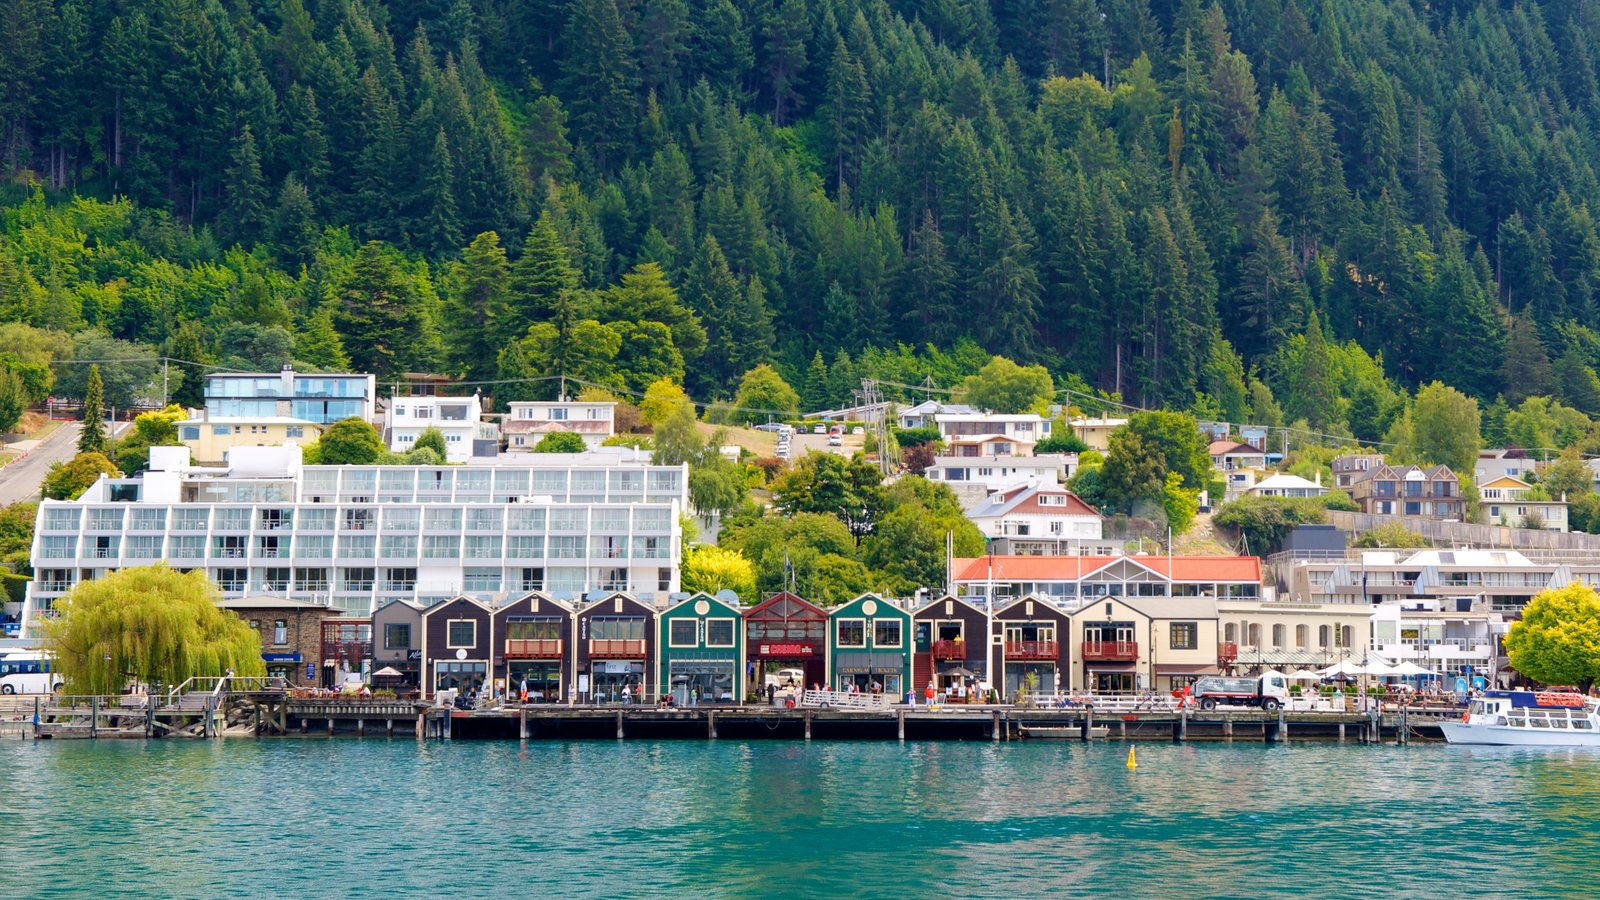 Steamer Wharf which includes a bay or harbor, a coastal town and forests